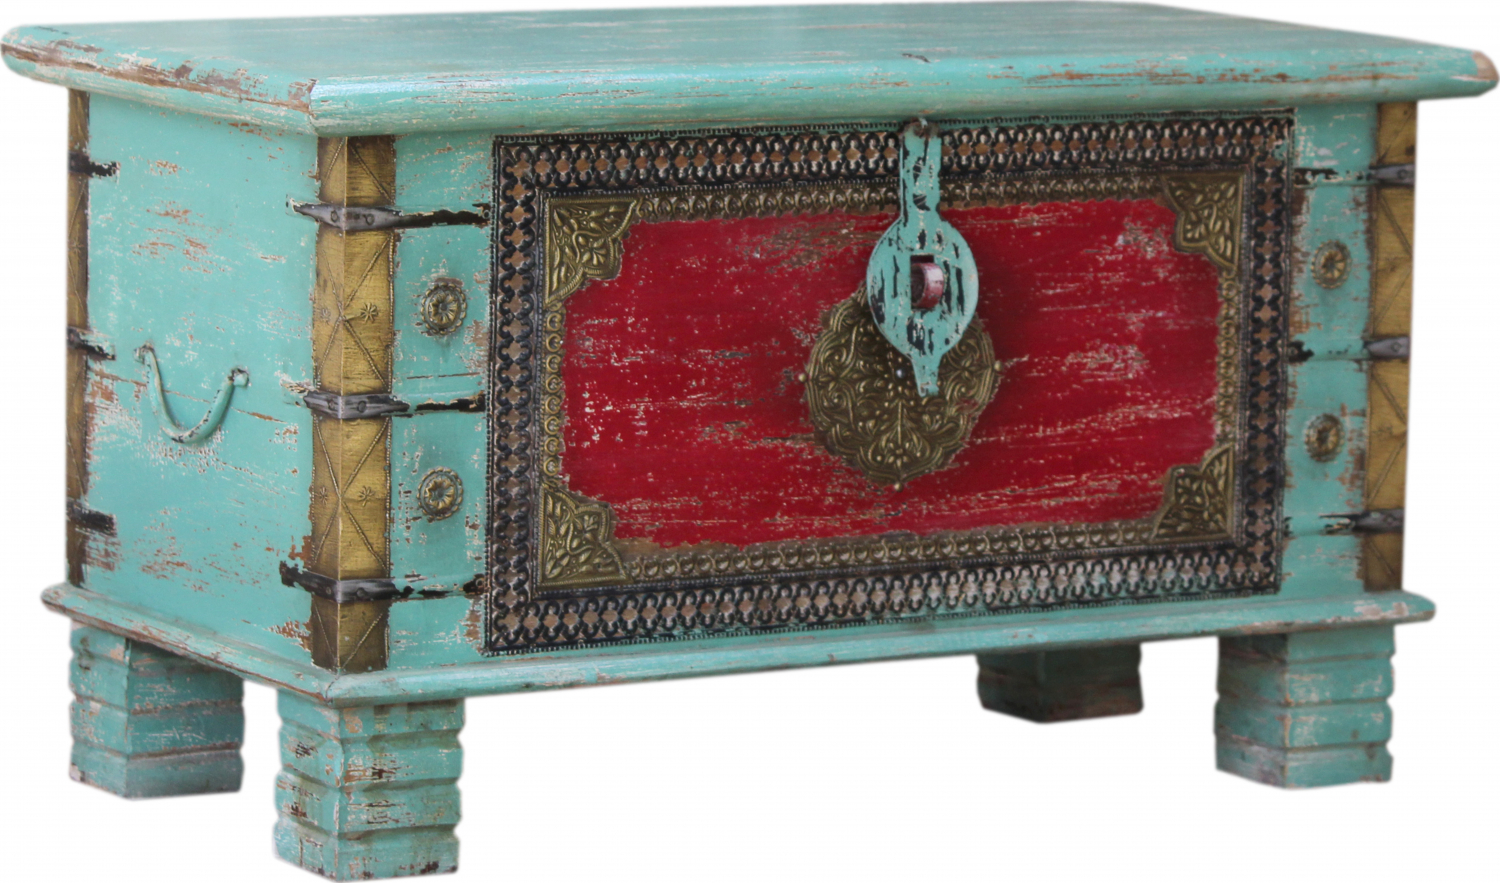 vintage wooden box wooden chest coffee table coffee table made of solid wood decorated model 42 45x80x40 cm